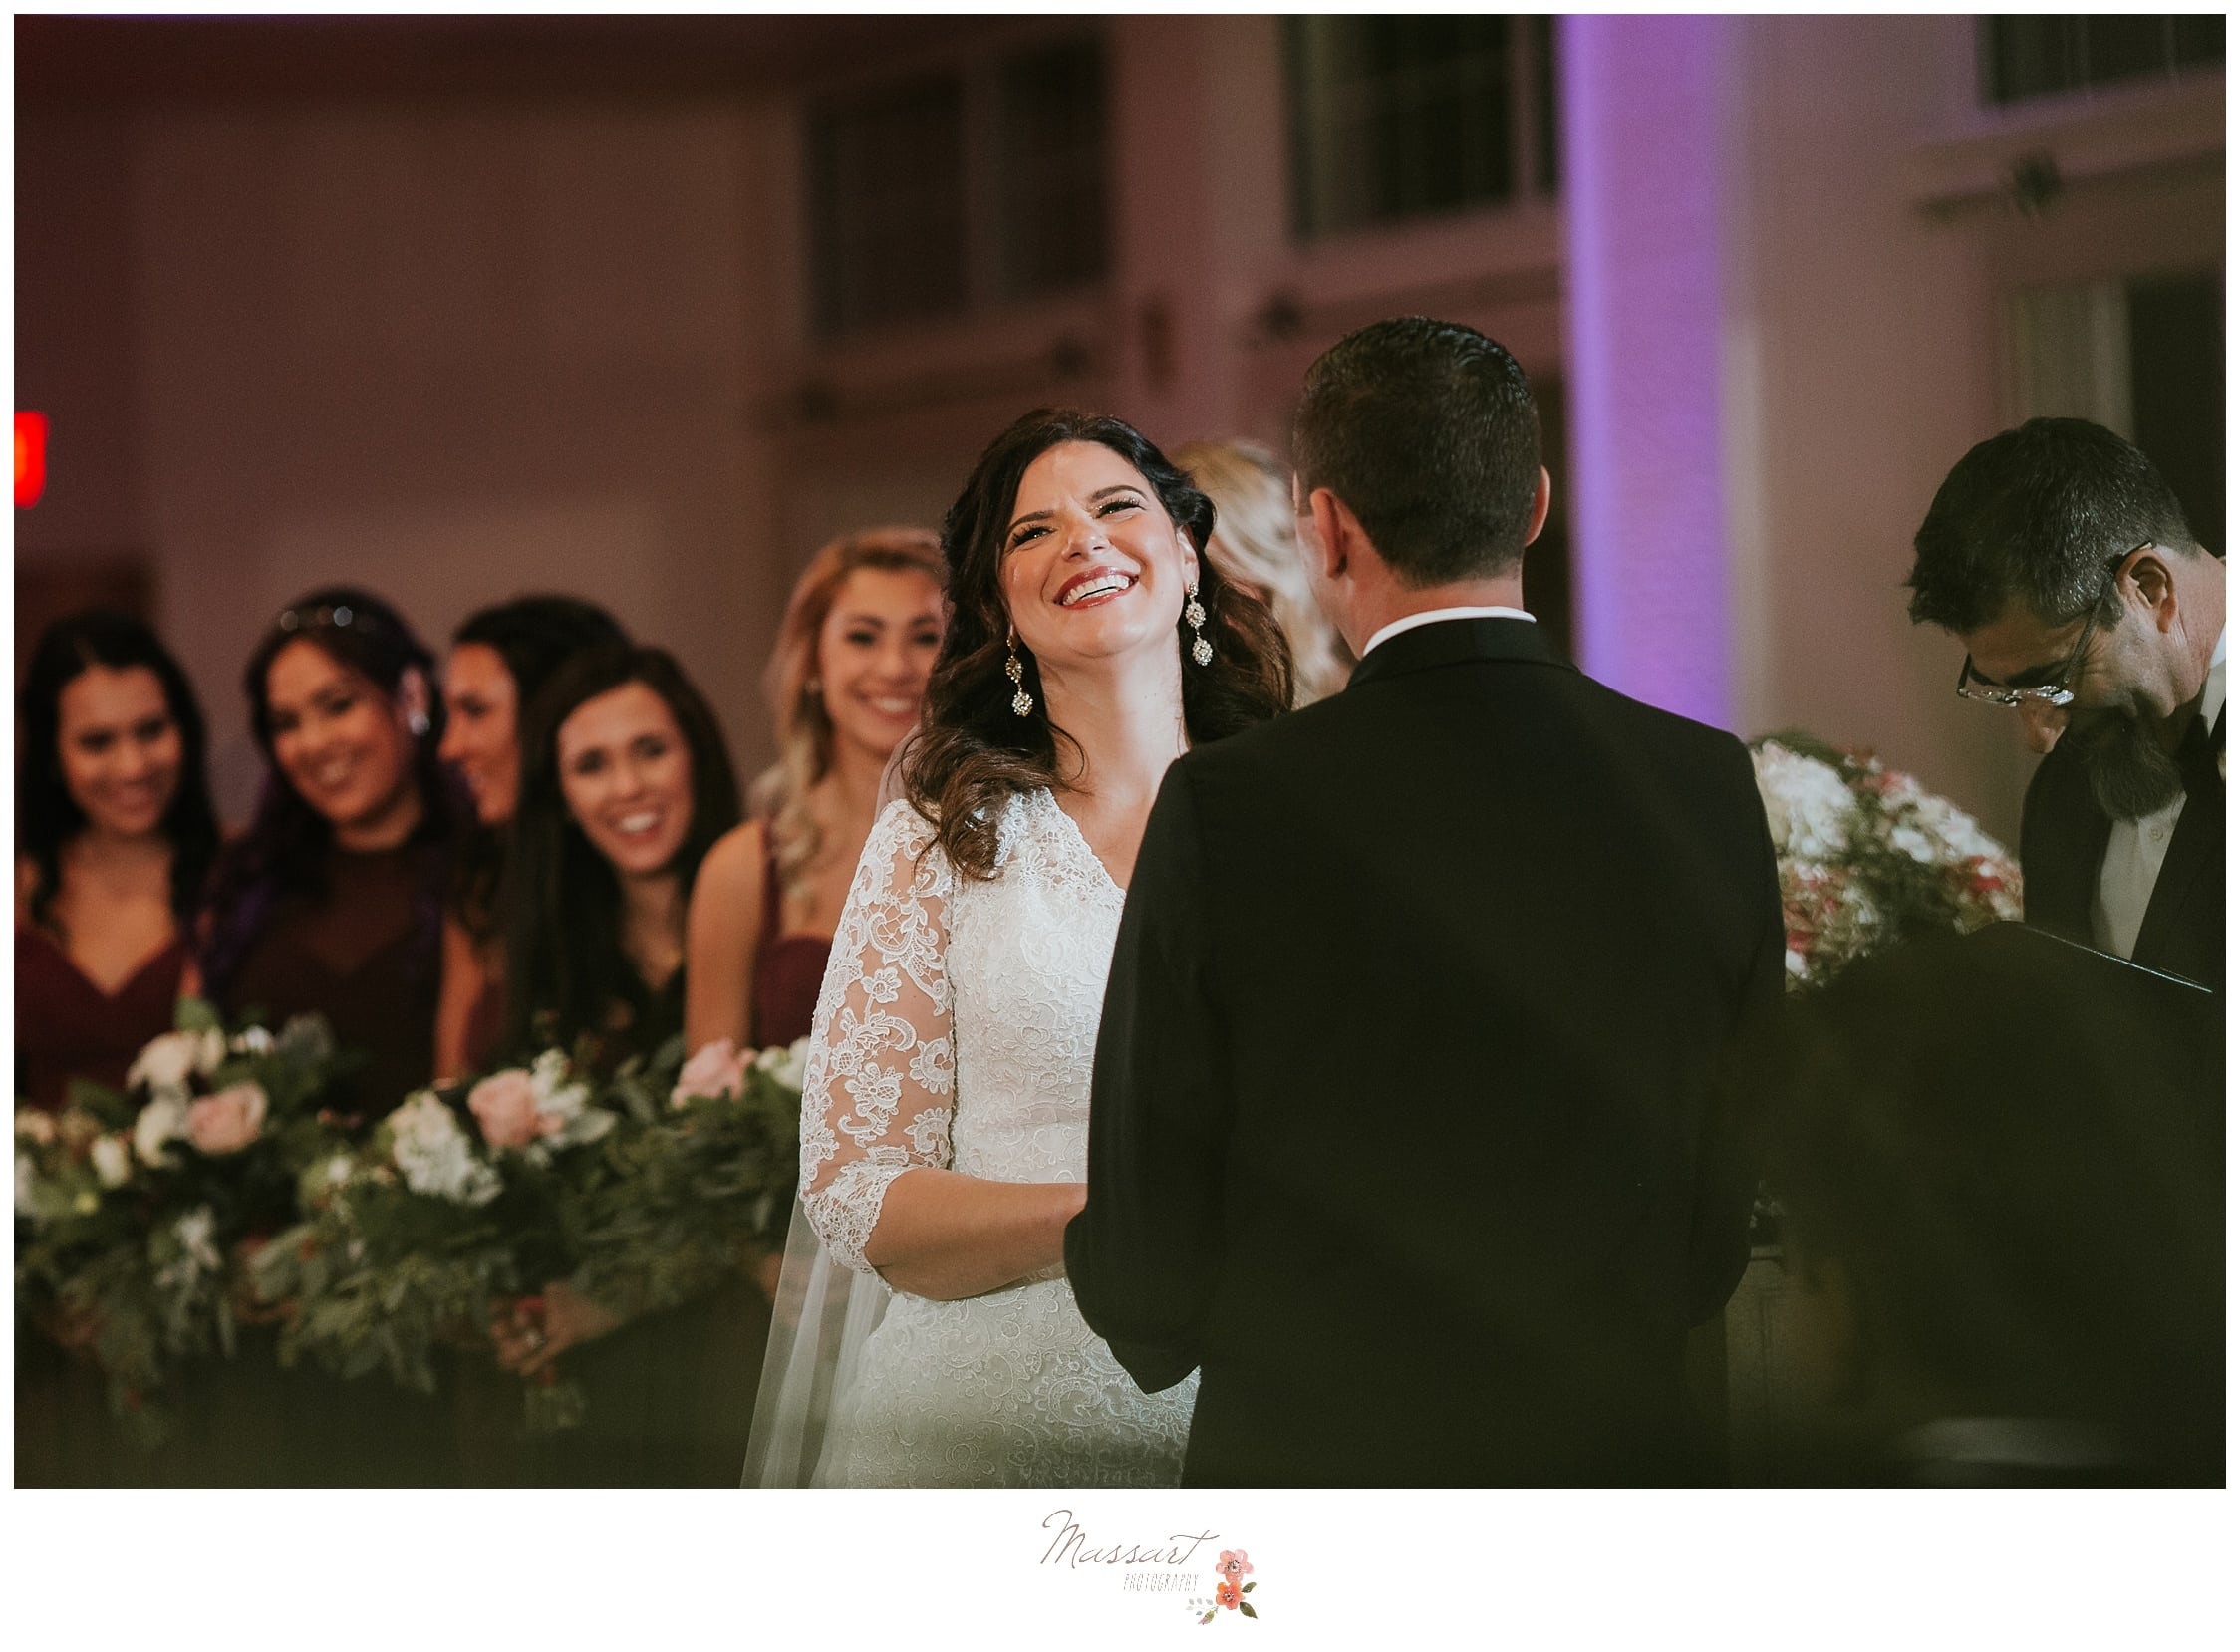 A wedding ceremony in the ballroom of the atlantic resort photographed by massart photographers of warwick RI